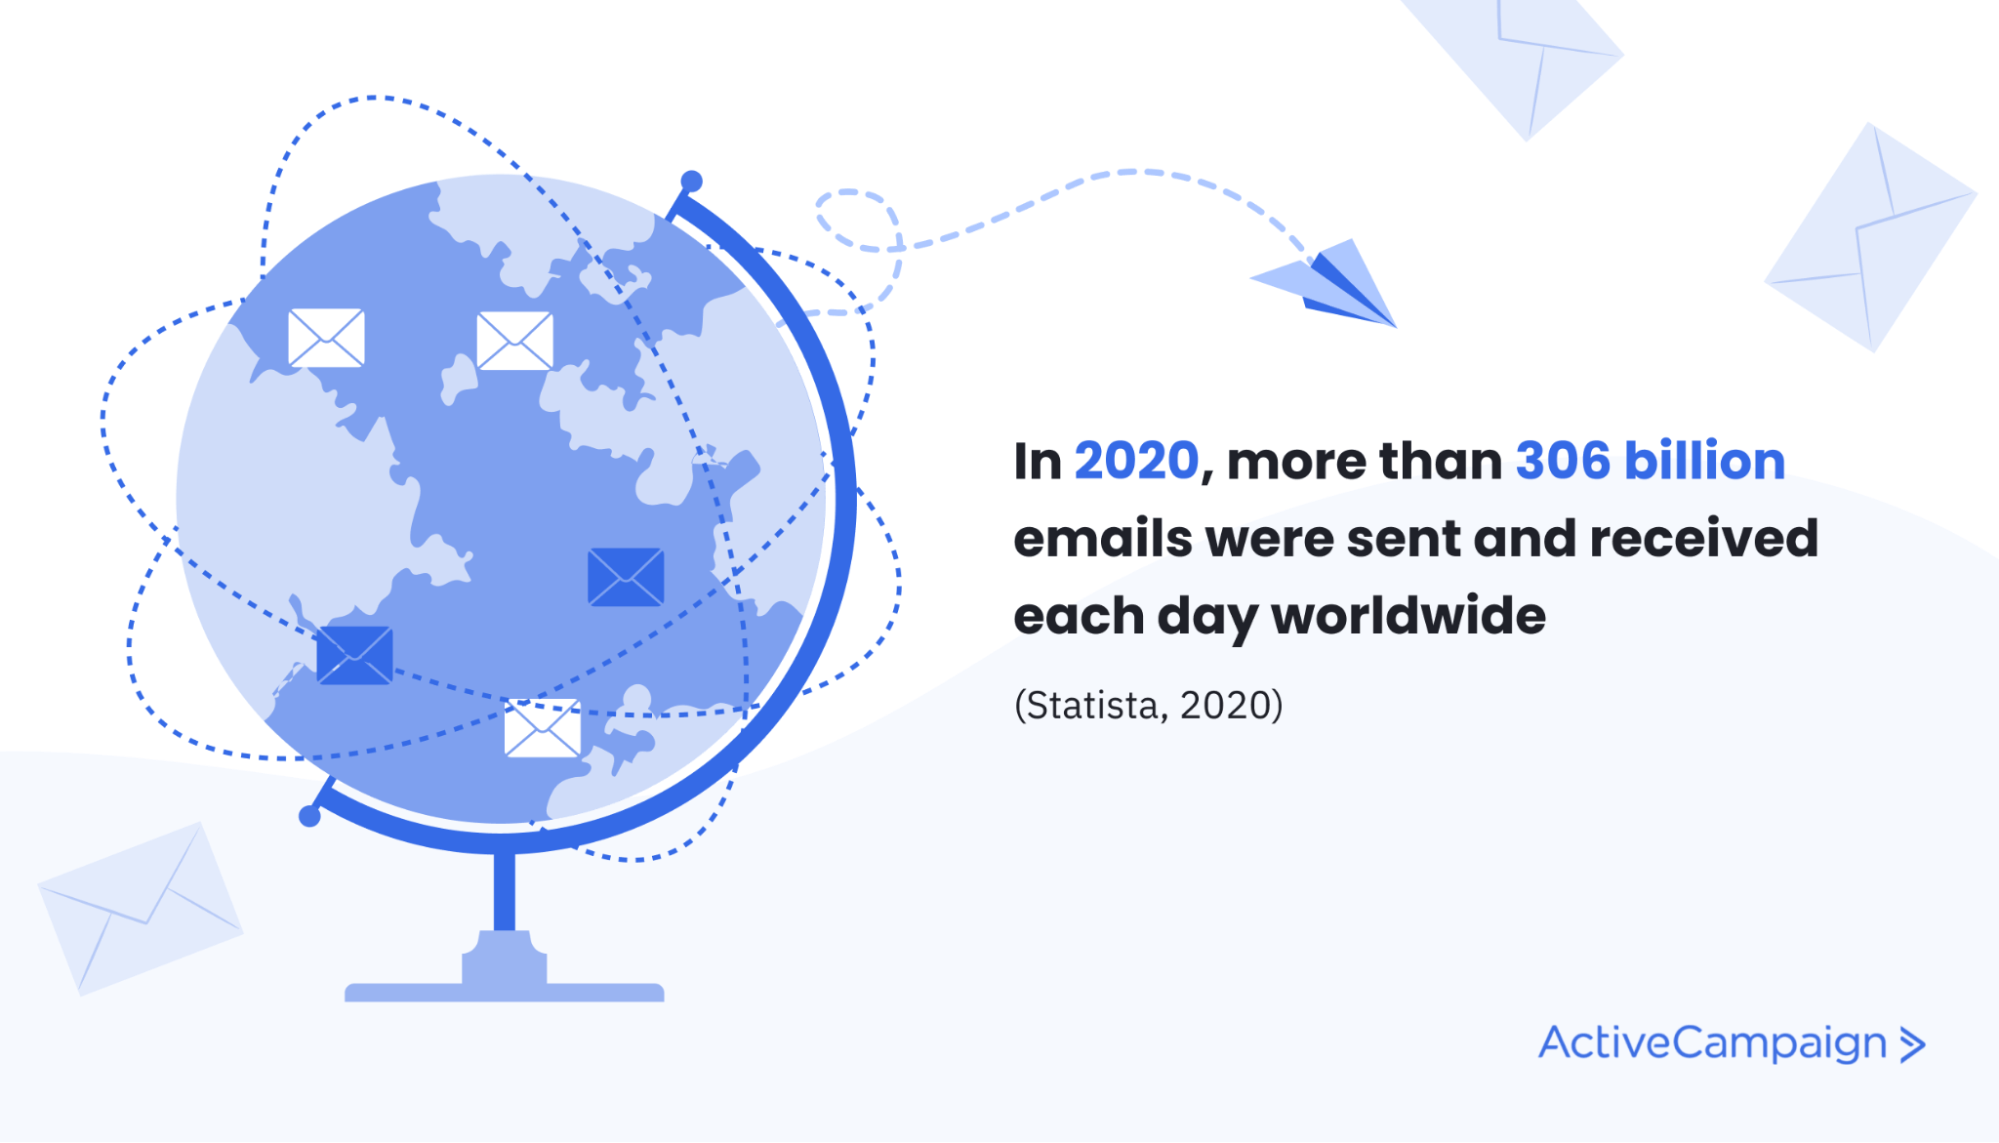 """global email statistic """"In 2020 more than 306 billion emails were sent and received each day worldwide"""""""